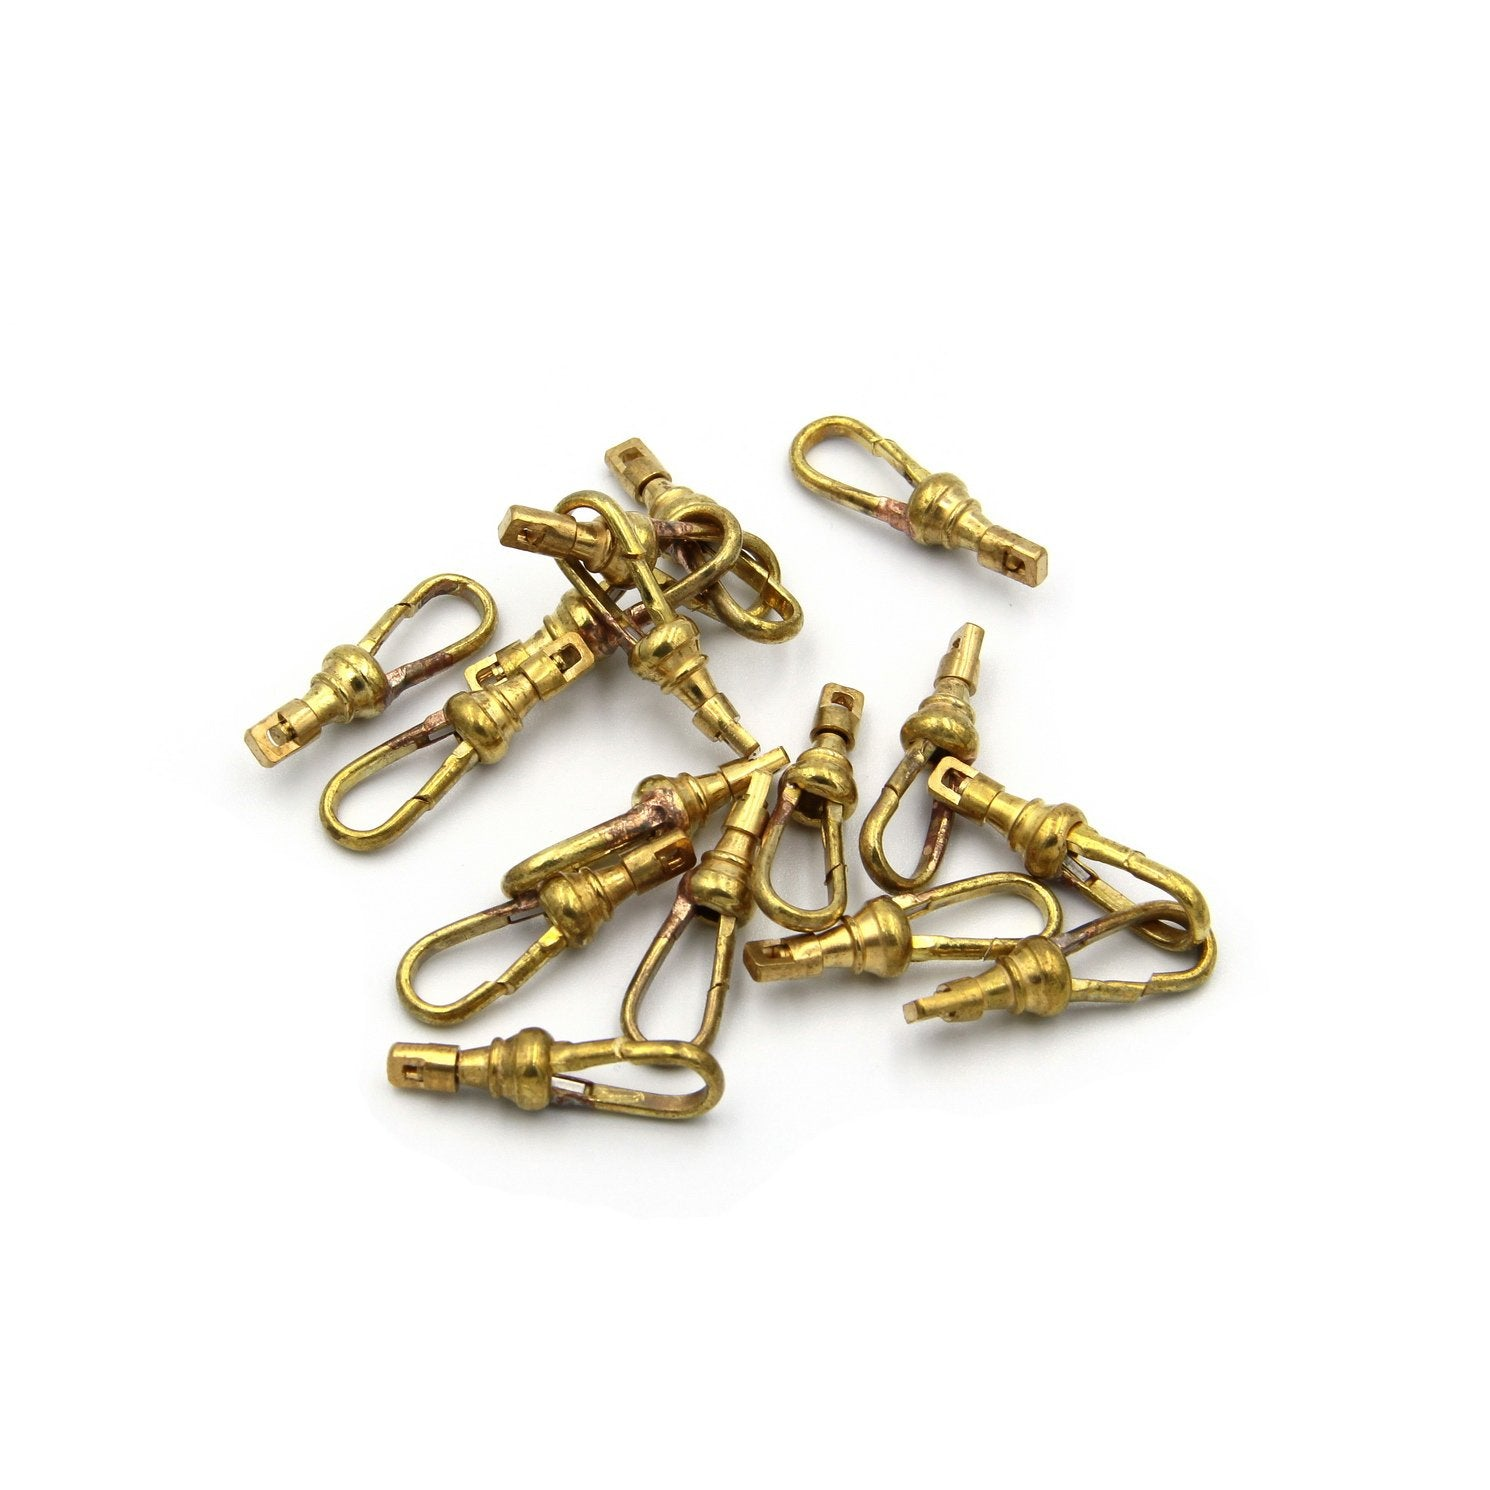 Brass Spring Hook for paracord lanyard Leather bracelets Strong Snap Clip - Metal Field